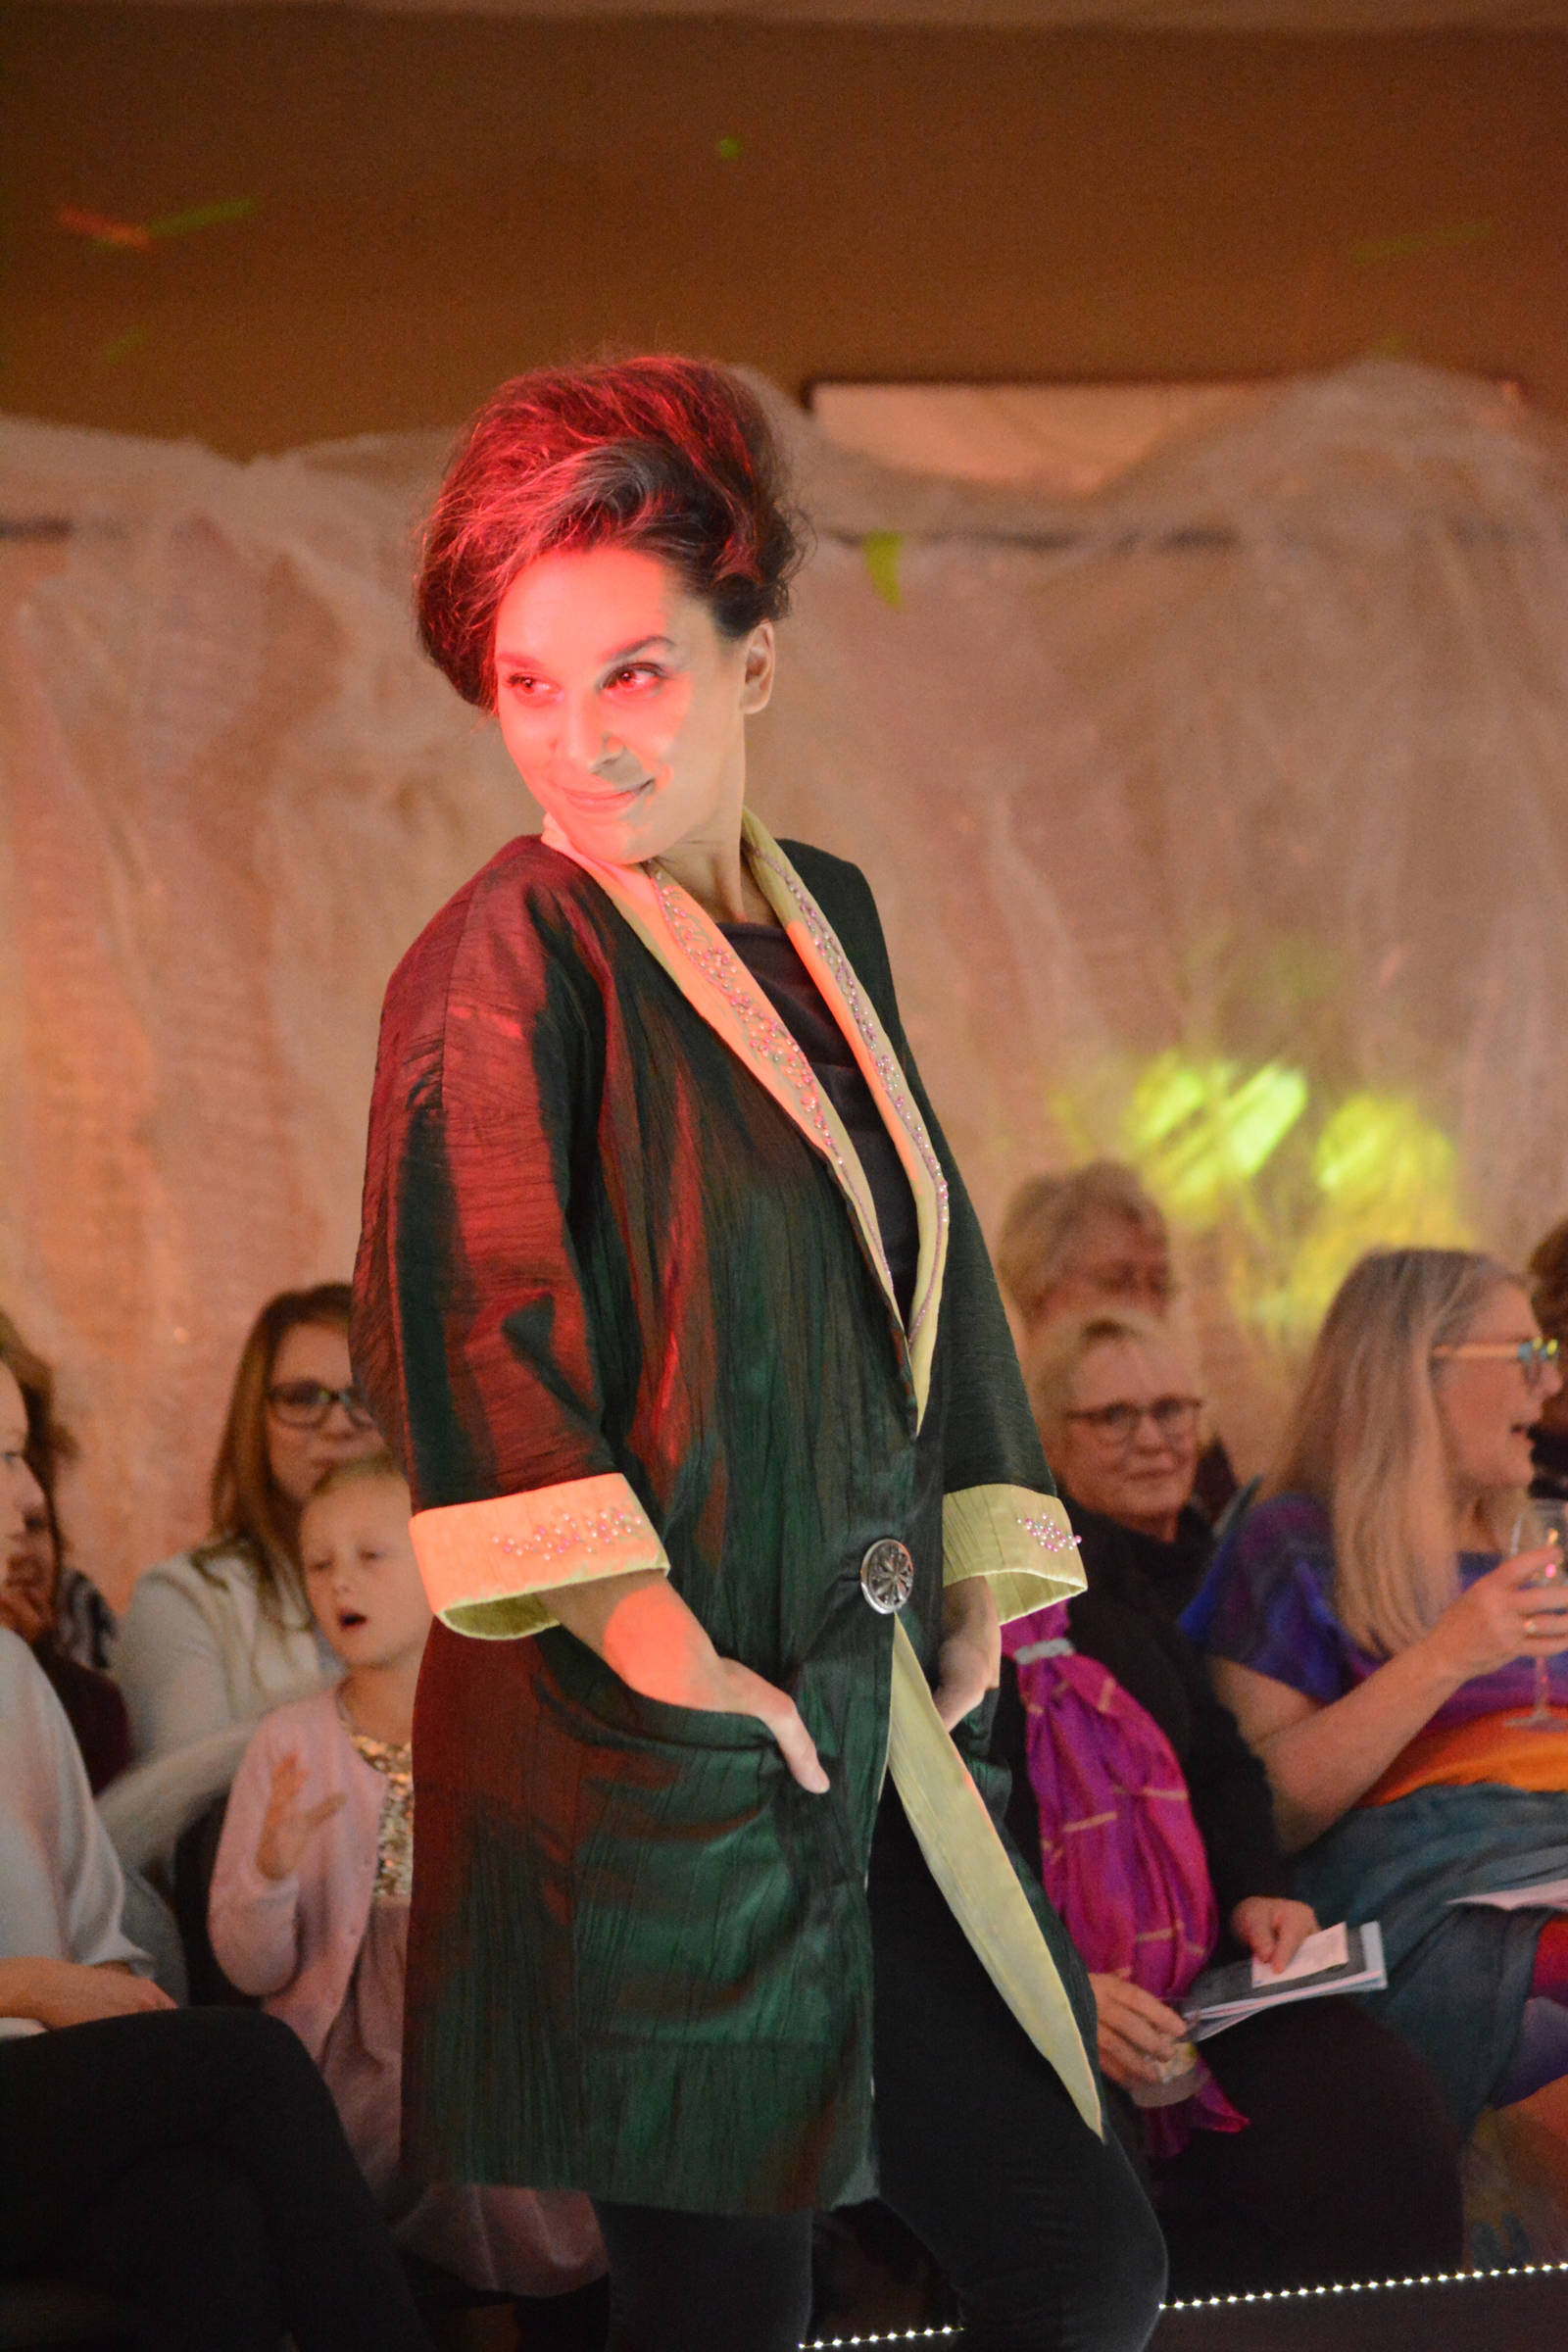 Rebeka Tufares wears a 1980s era jacket by Barb and C.A. Meyers at the 2018 Wearable Arts on Nov. 17, 2018, in Homer, Alaska. (Photo by Michael Armstrong/Homer News)